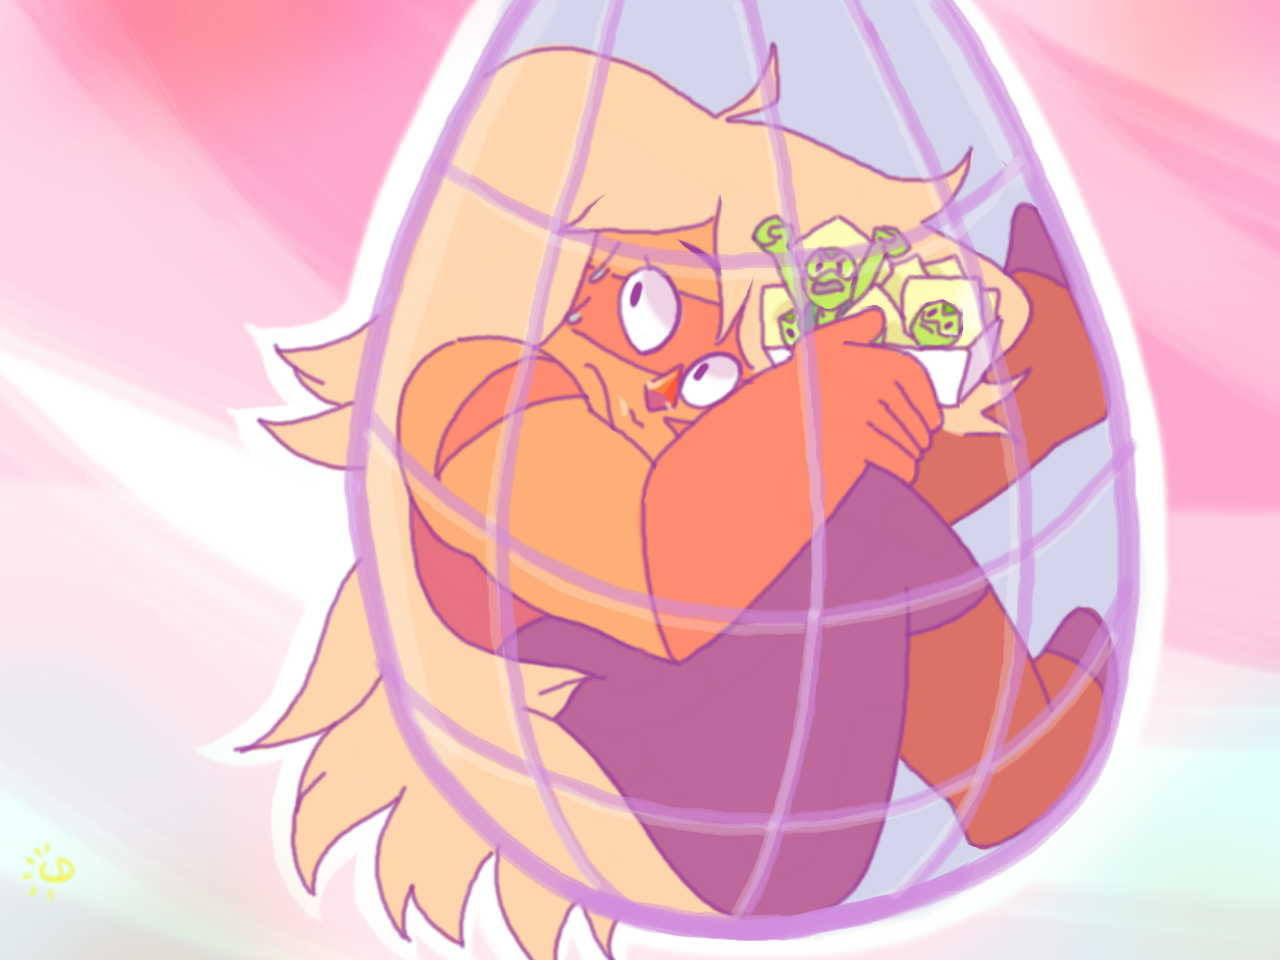 THE NACHOS TRICKED ME But truly, for much more high quality jaspers please check out this zine!